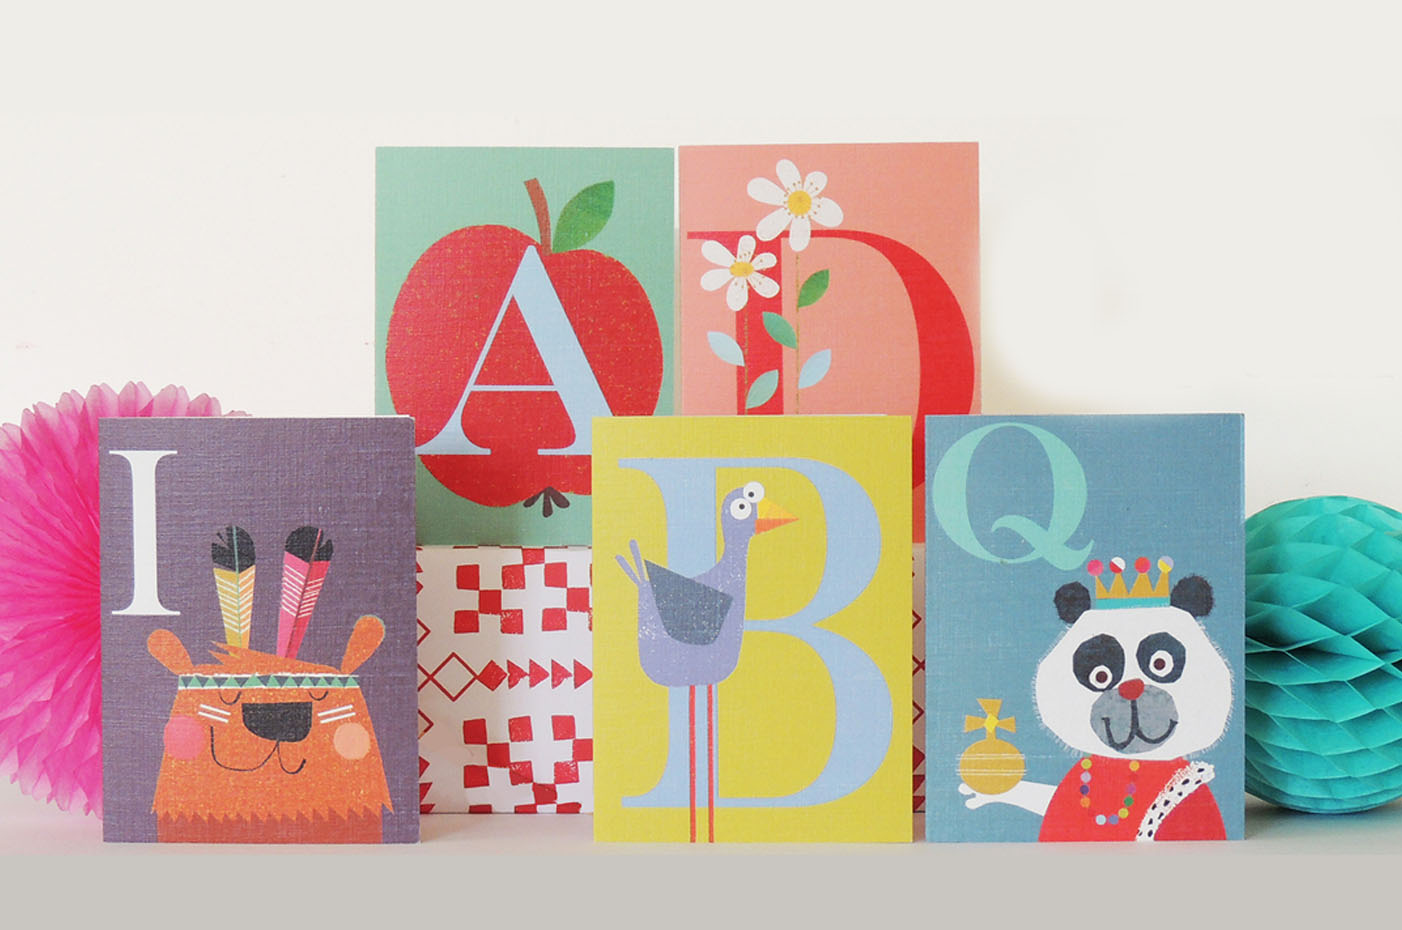 Above: Gorgeous cards for kids from Kali Stileman.